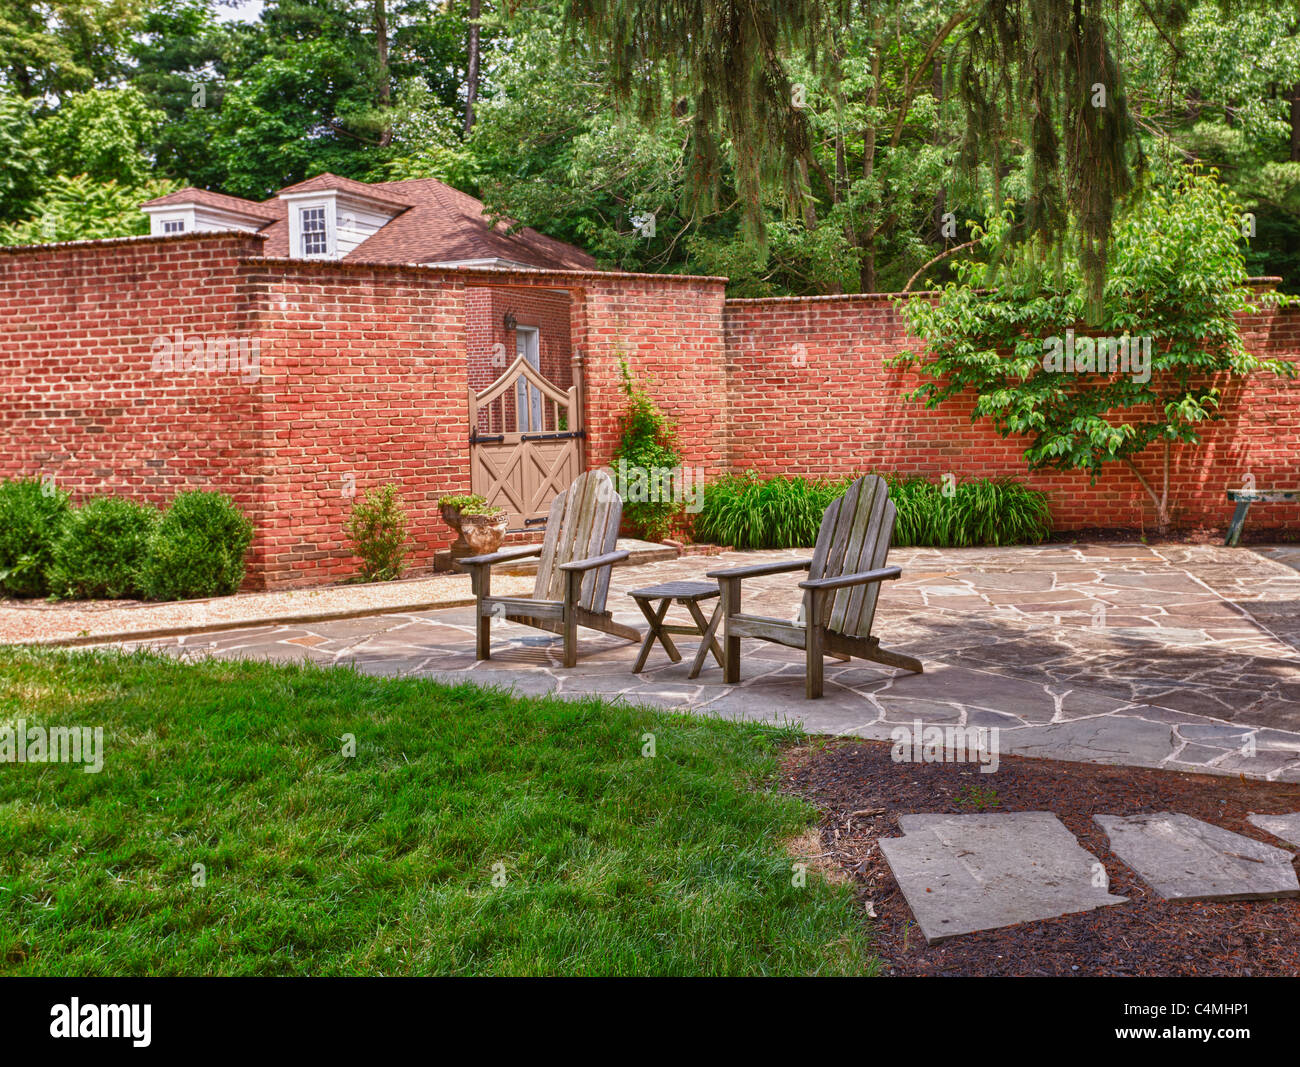 wooden cape cod style chairs on crazy paving patio in front of